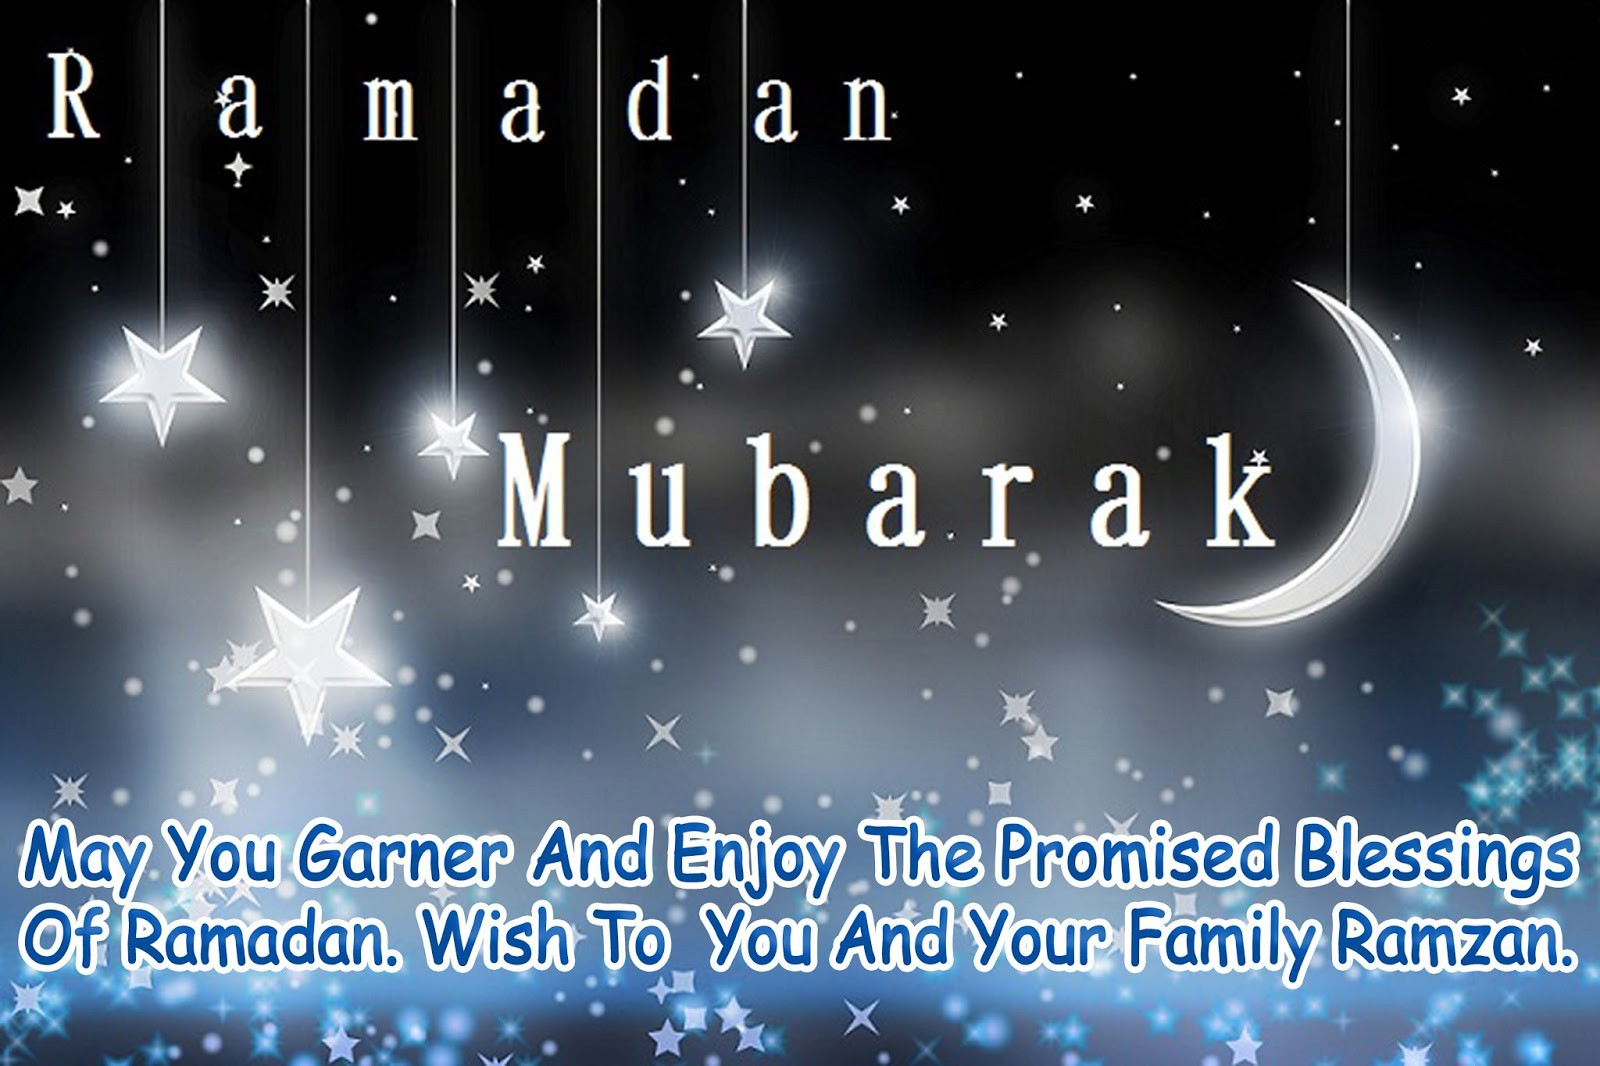 Ramadan Greetings, Wishes,  for Ramadan Quotes Wallpapers  288gtk